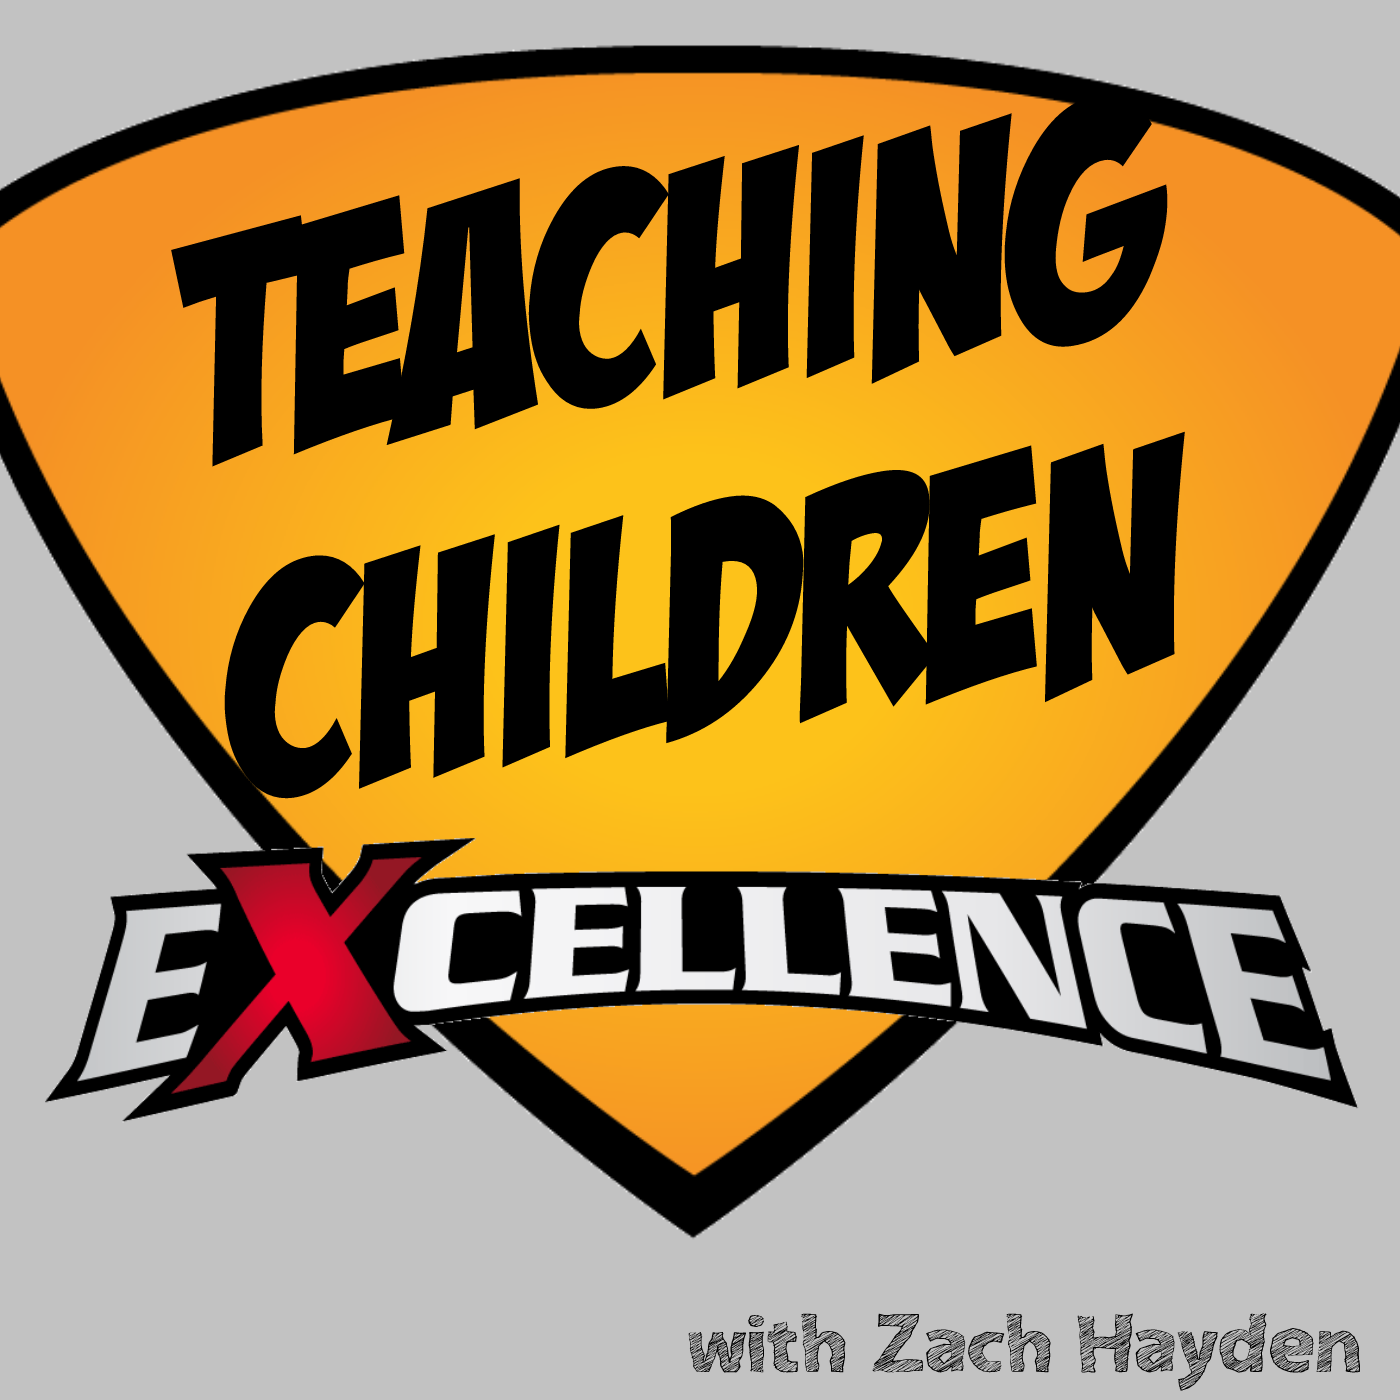 Teach Children Excellence